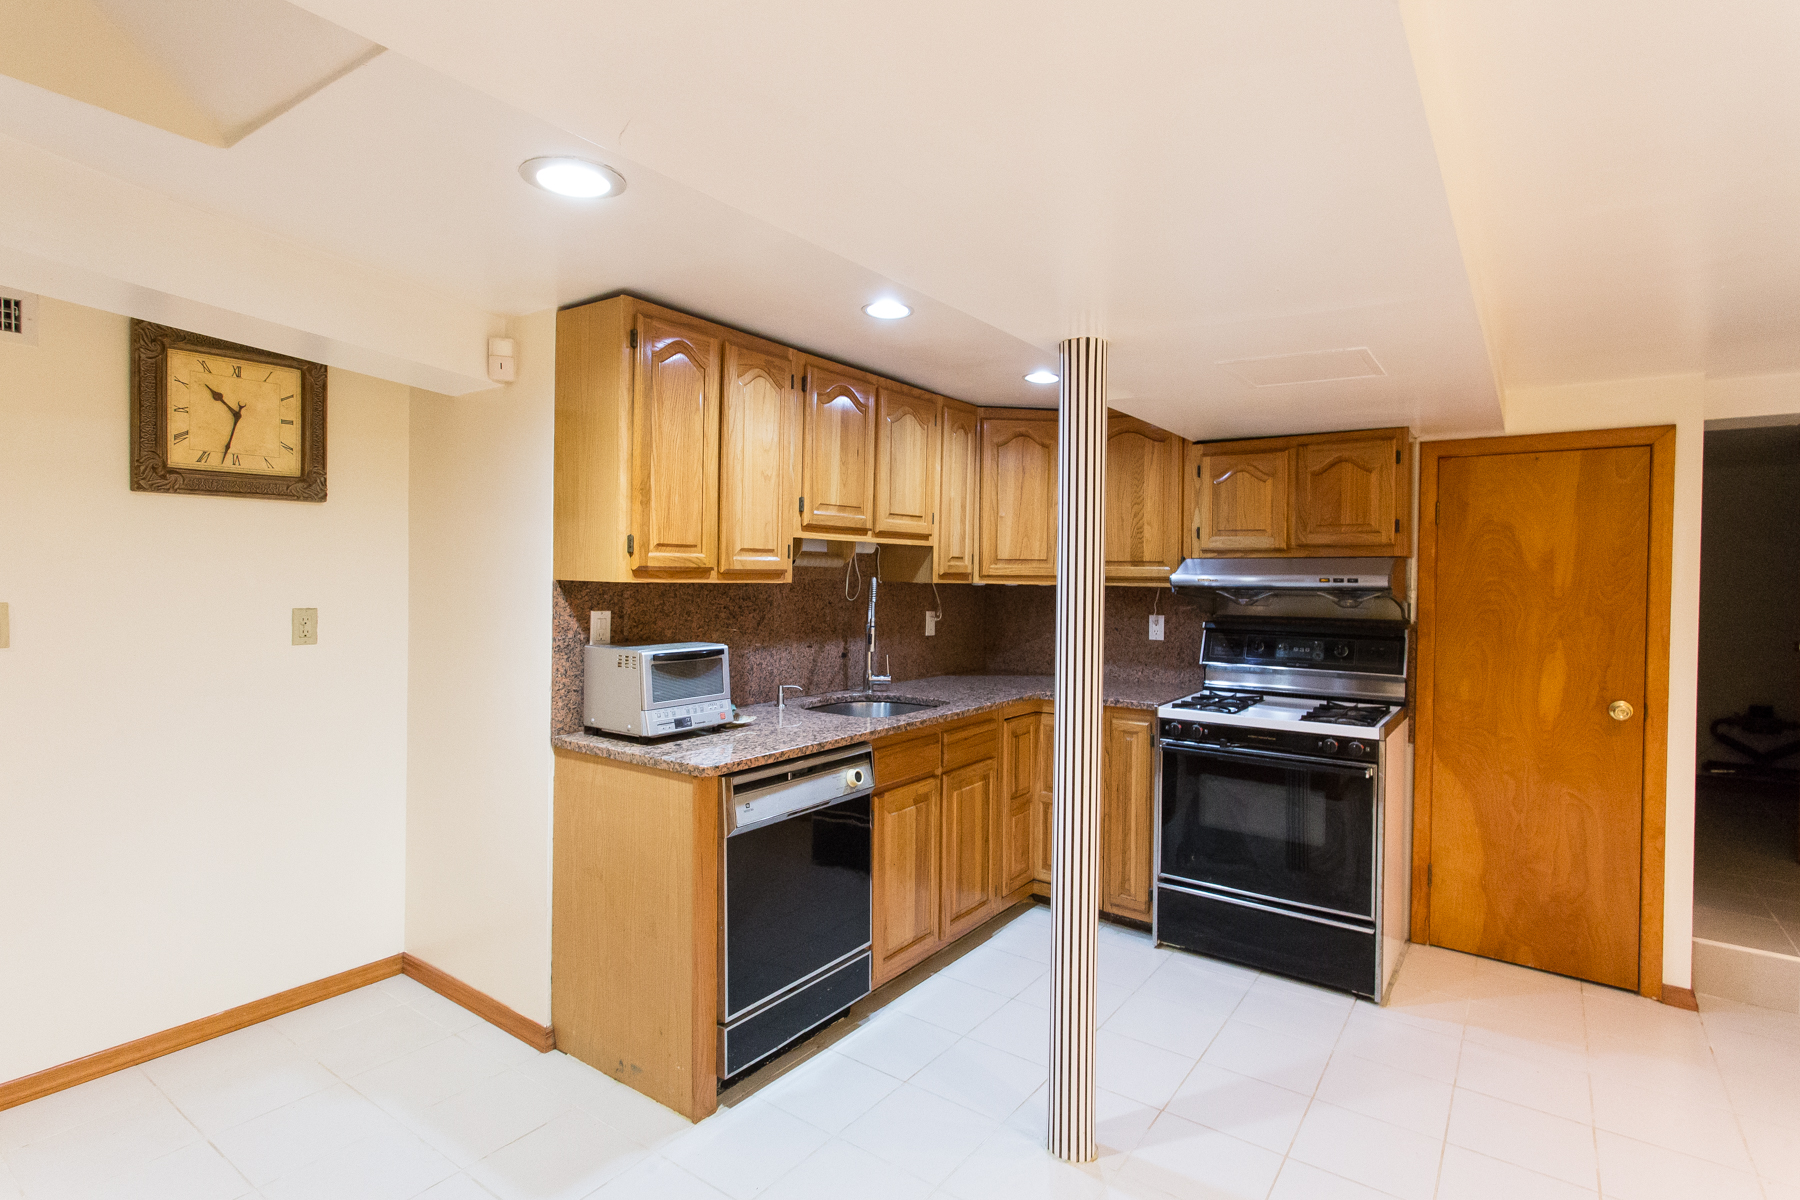 """Additional photo for property listing at """"TRADITIONAL LUXURY"""" 81 Puritan Avenue, Forest Hills Gardens, Forest Hills, New York 11375 United States"""